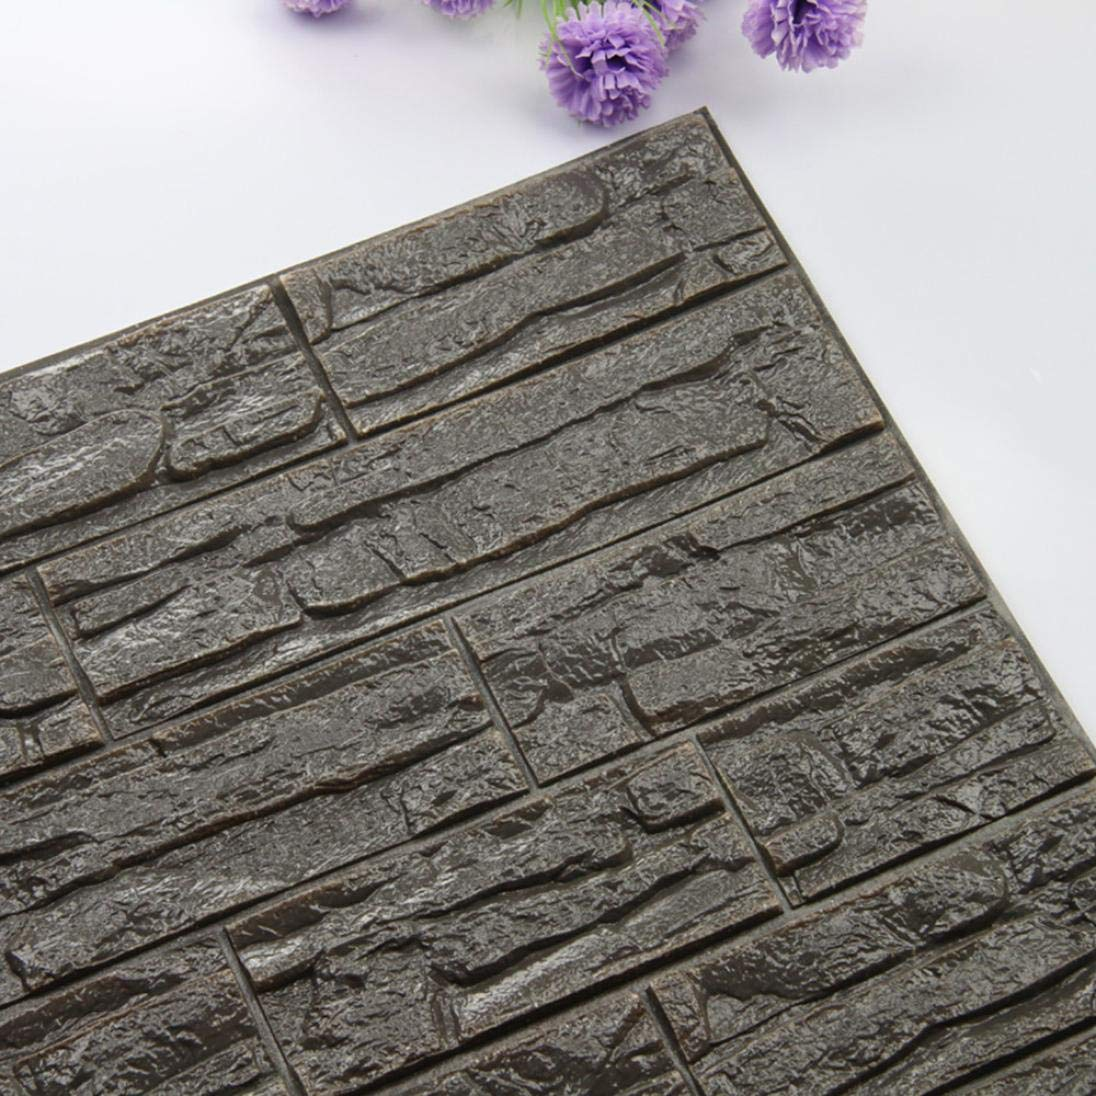 Clearance!!! Hongxin 60x30cm 3D Stone Brick PE Foam Wallpaper Posters Wall Stickers Safety Wall Decor Living Room Kitchen Home Improvement Decoration Christmas Decor (M)